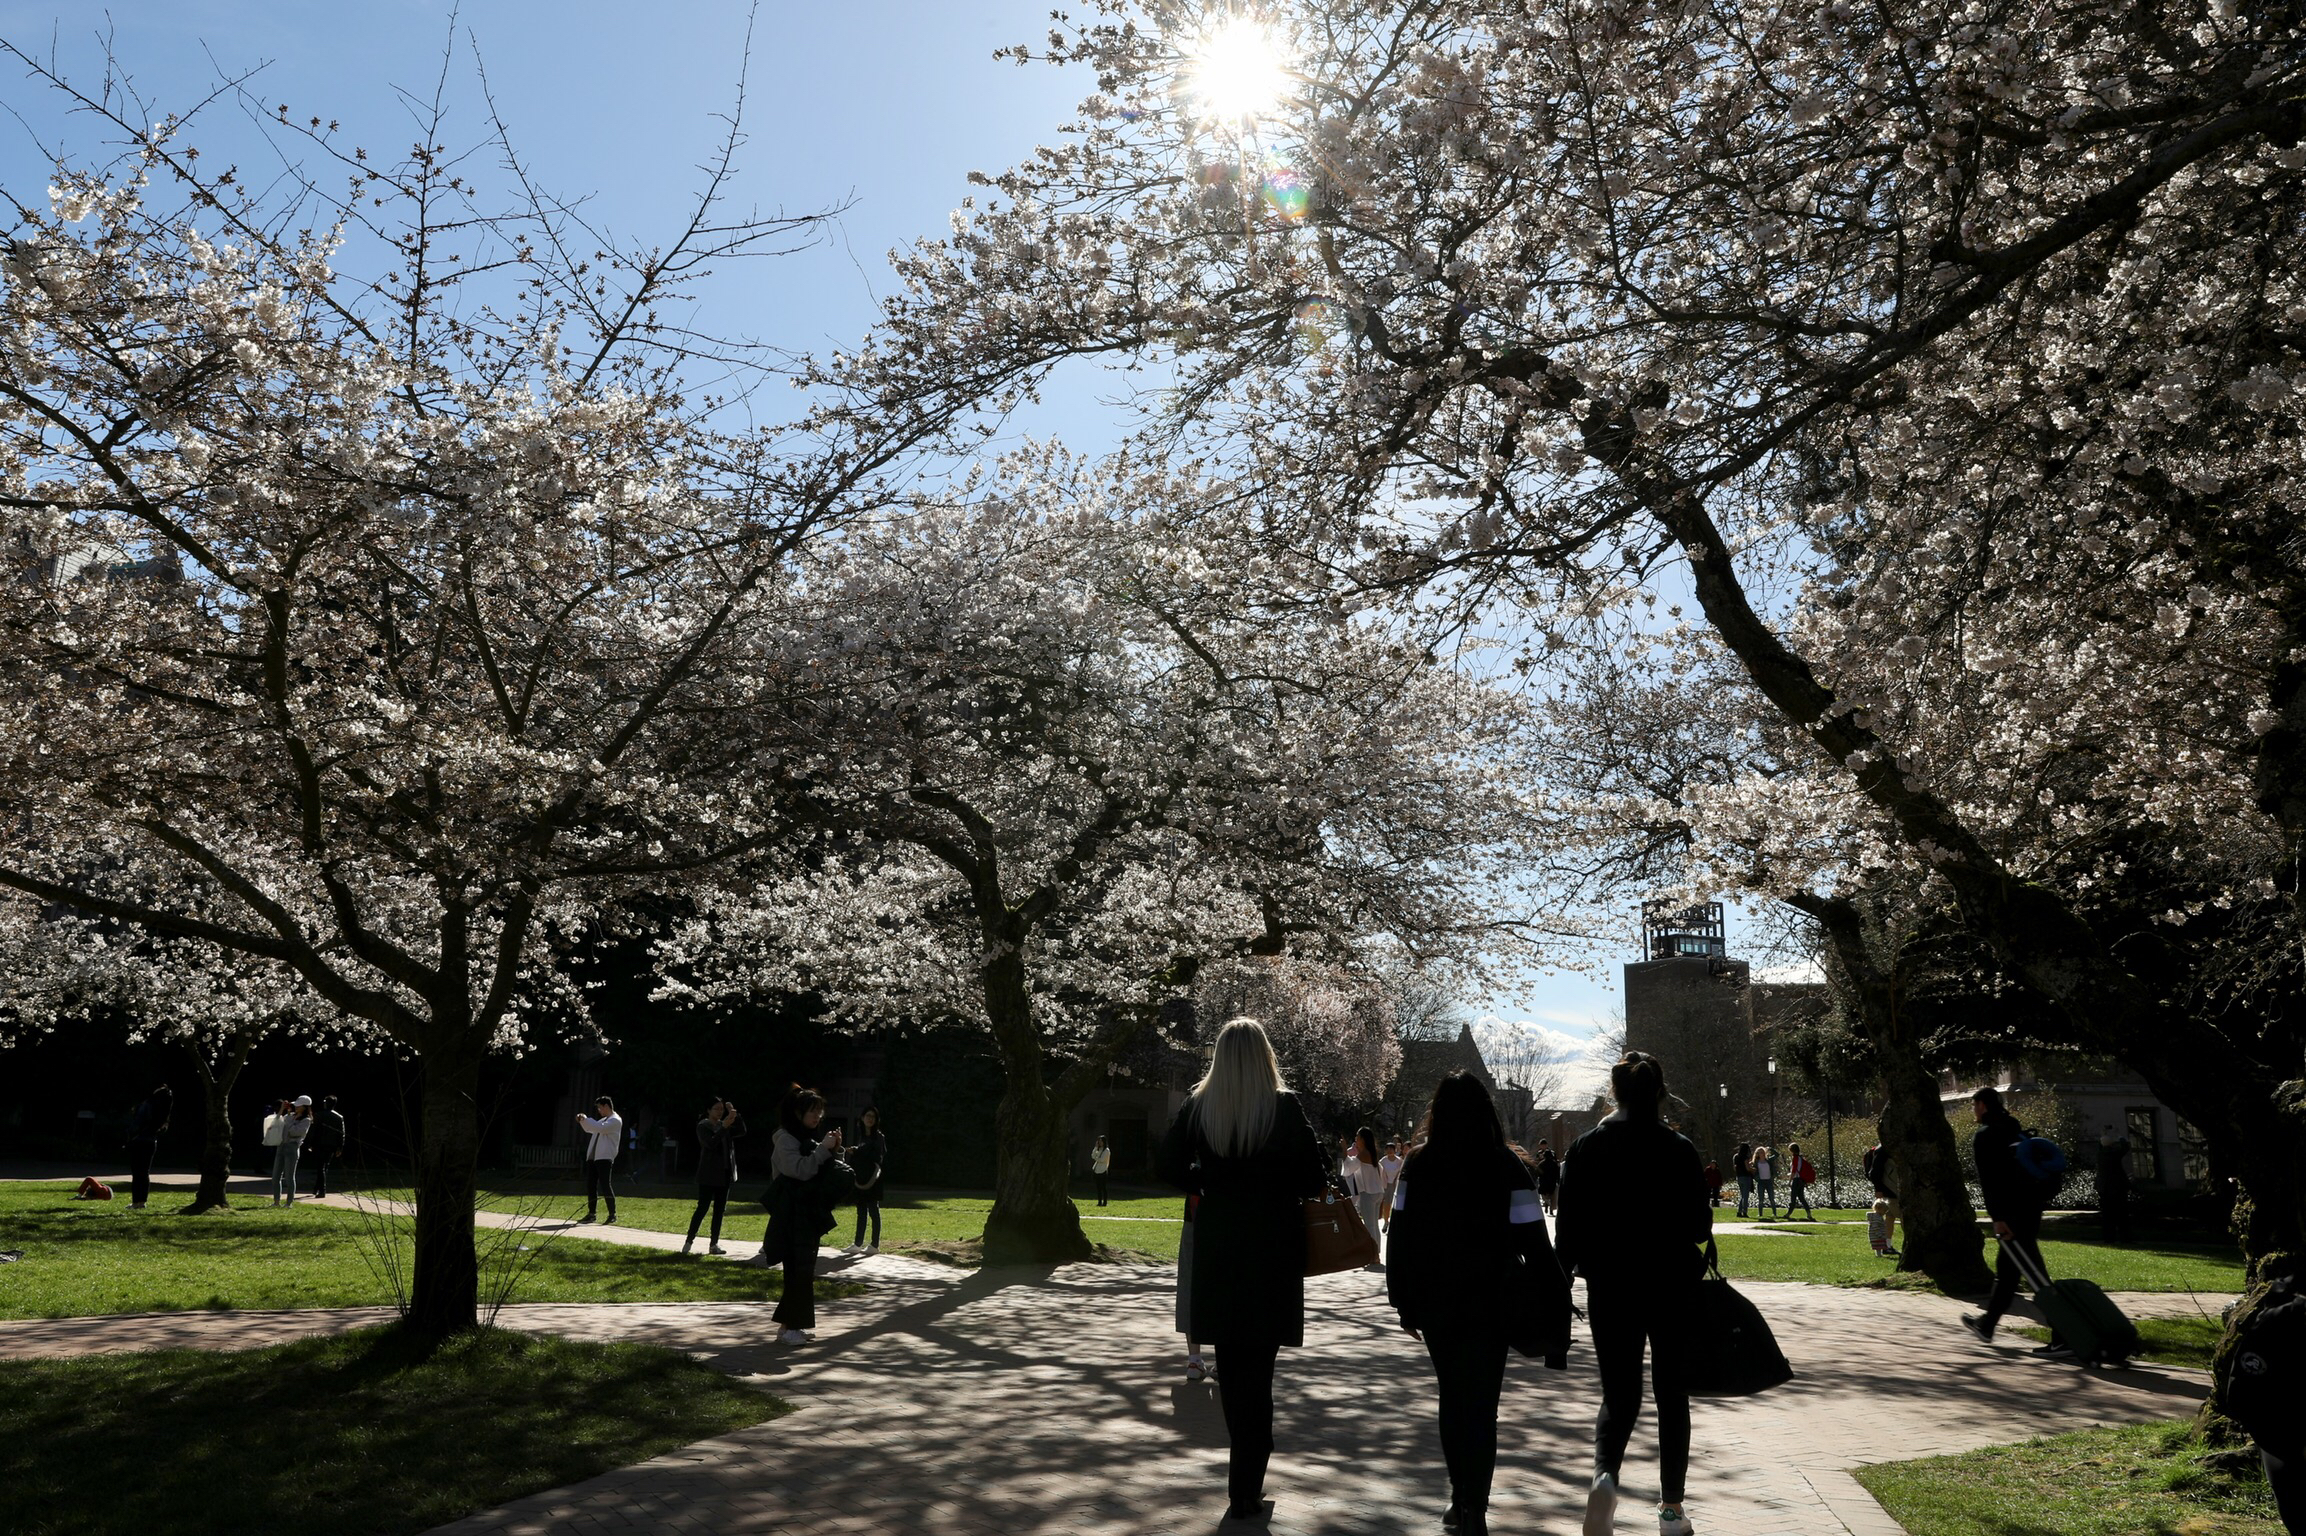 People walk amid blooming cherry blossoms trees during a sunny afternoon on the UW Quad in Seattle on March 15, 2018.